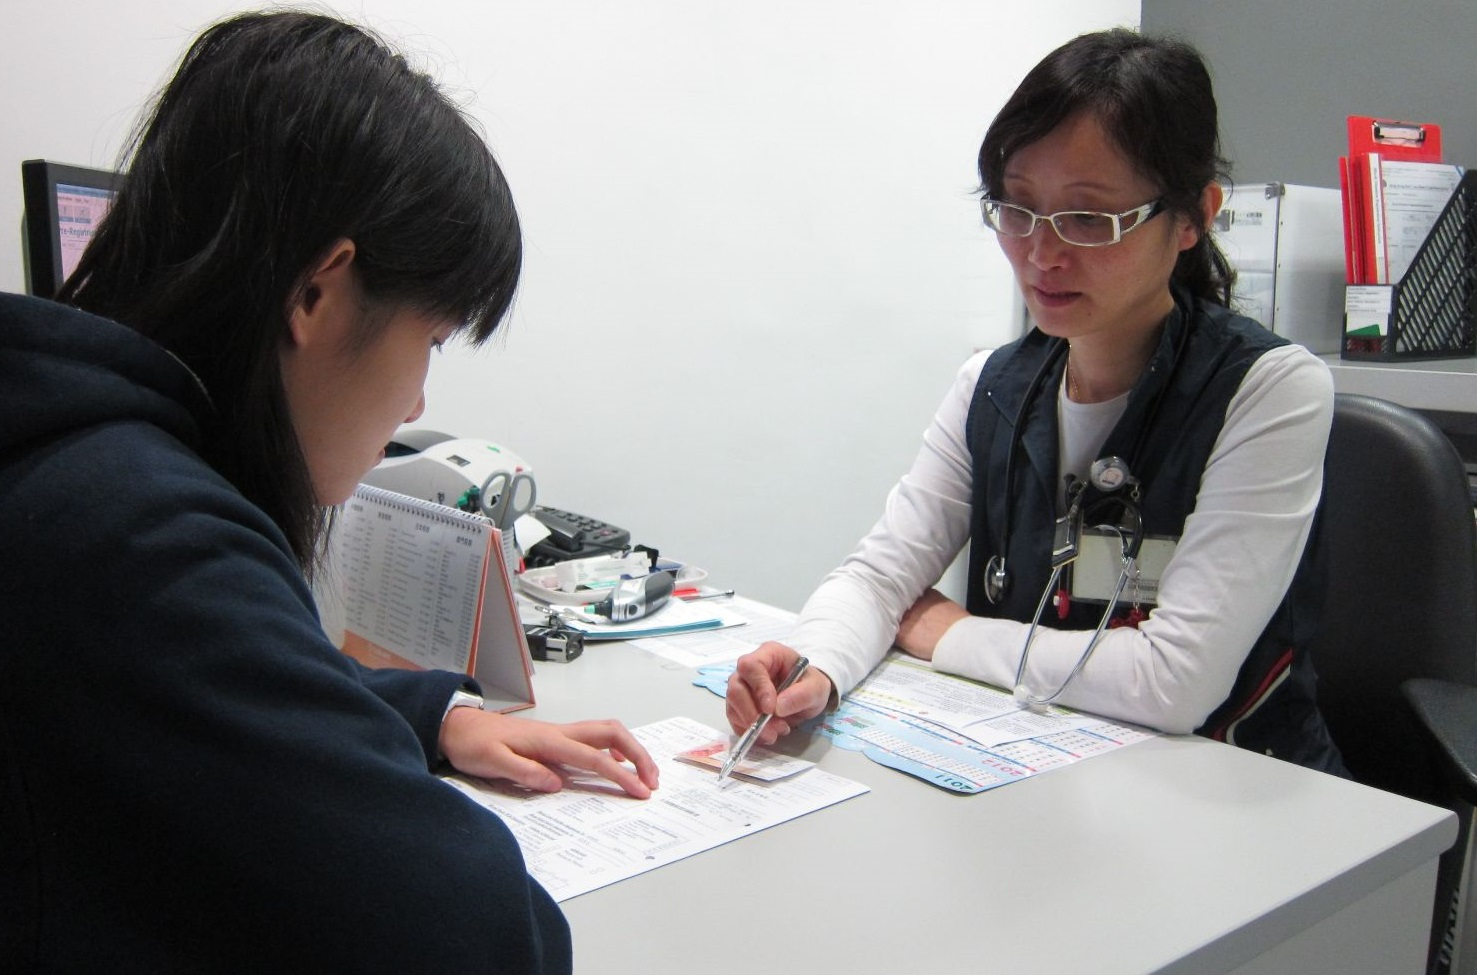 Image: Health screening by the nurse, who will also measure the donor's body temperature